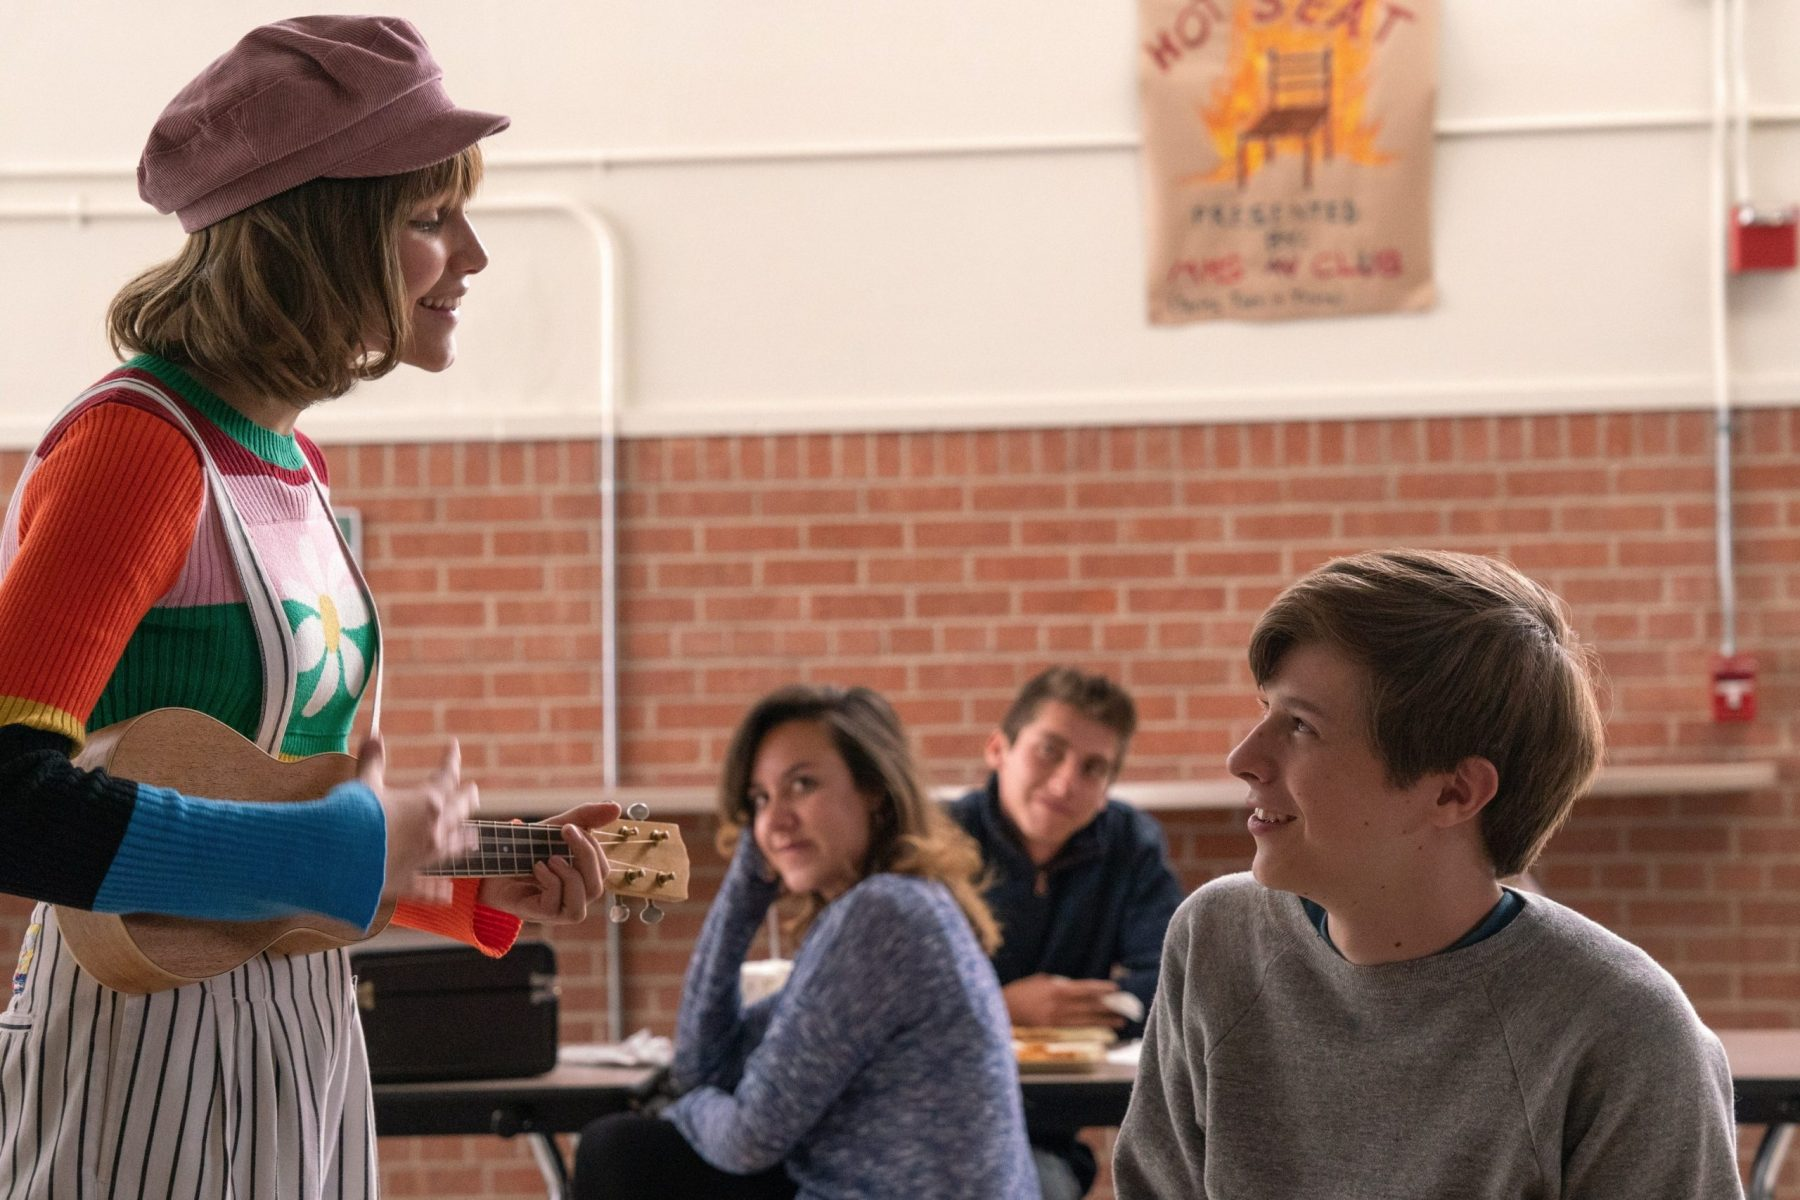 A scene from 'Stargirl' where Stargirl sings to Leo in the school cafeteria